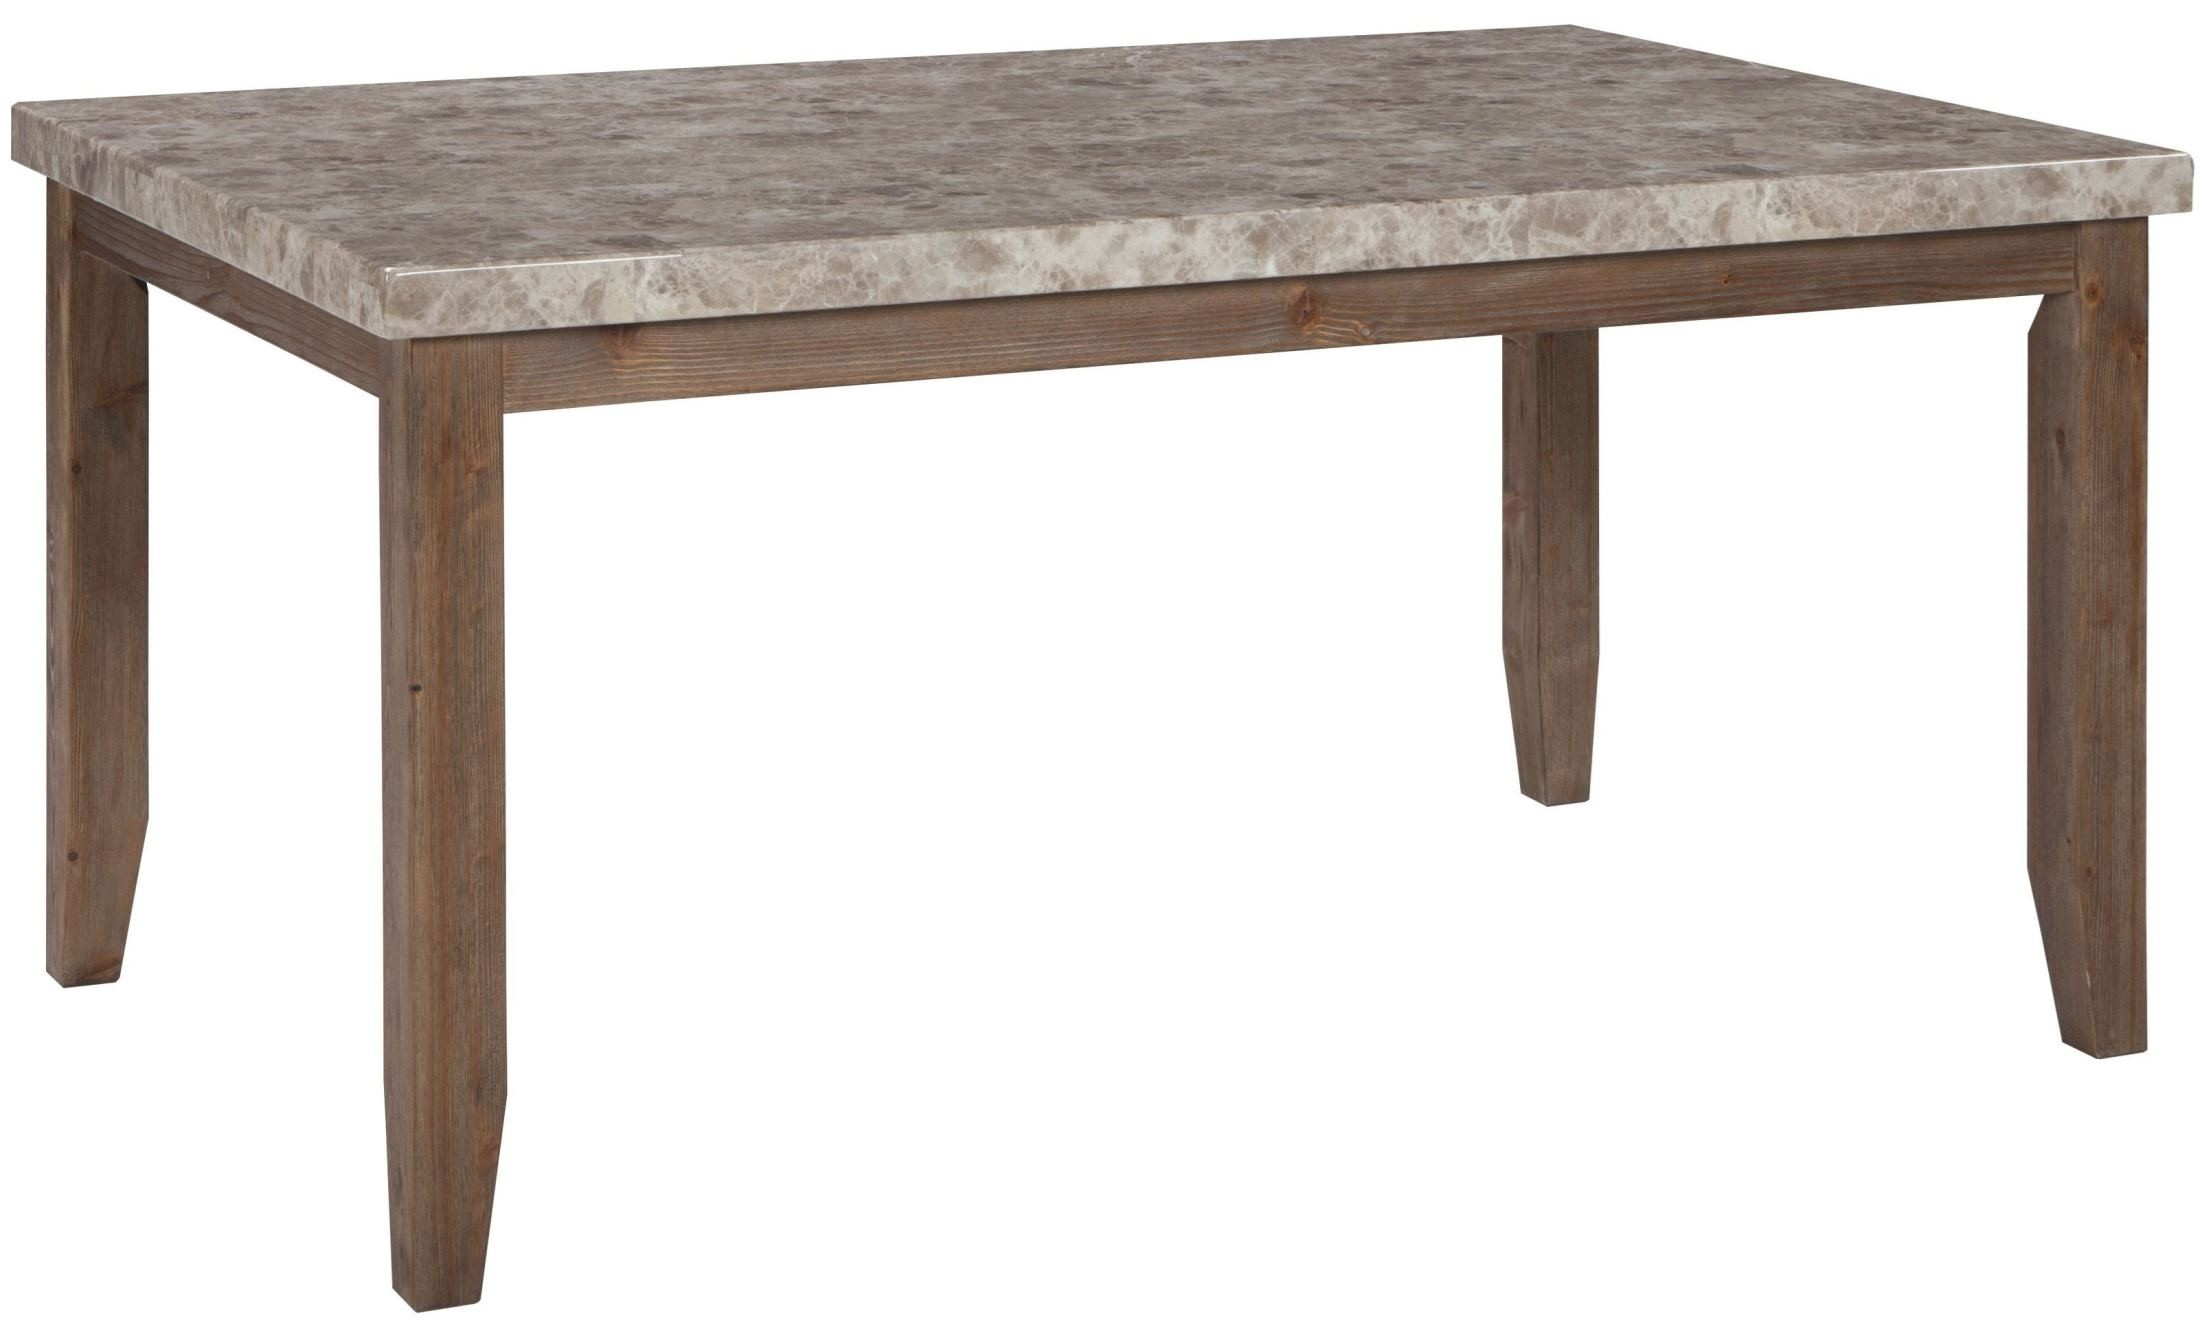 Narvilla two tone rectangular dining room table d559 25 for Dining room table 2